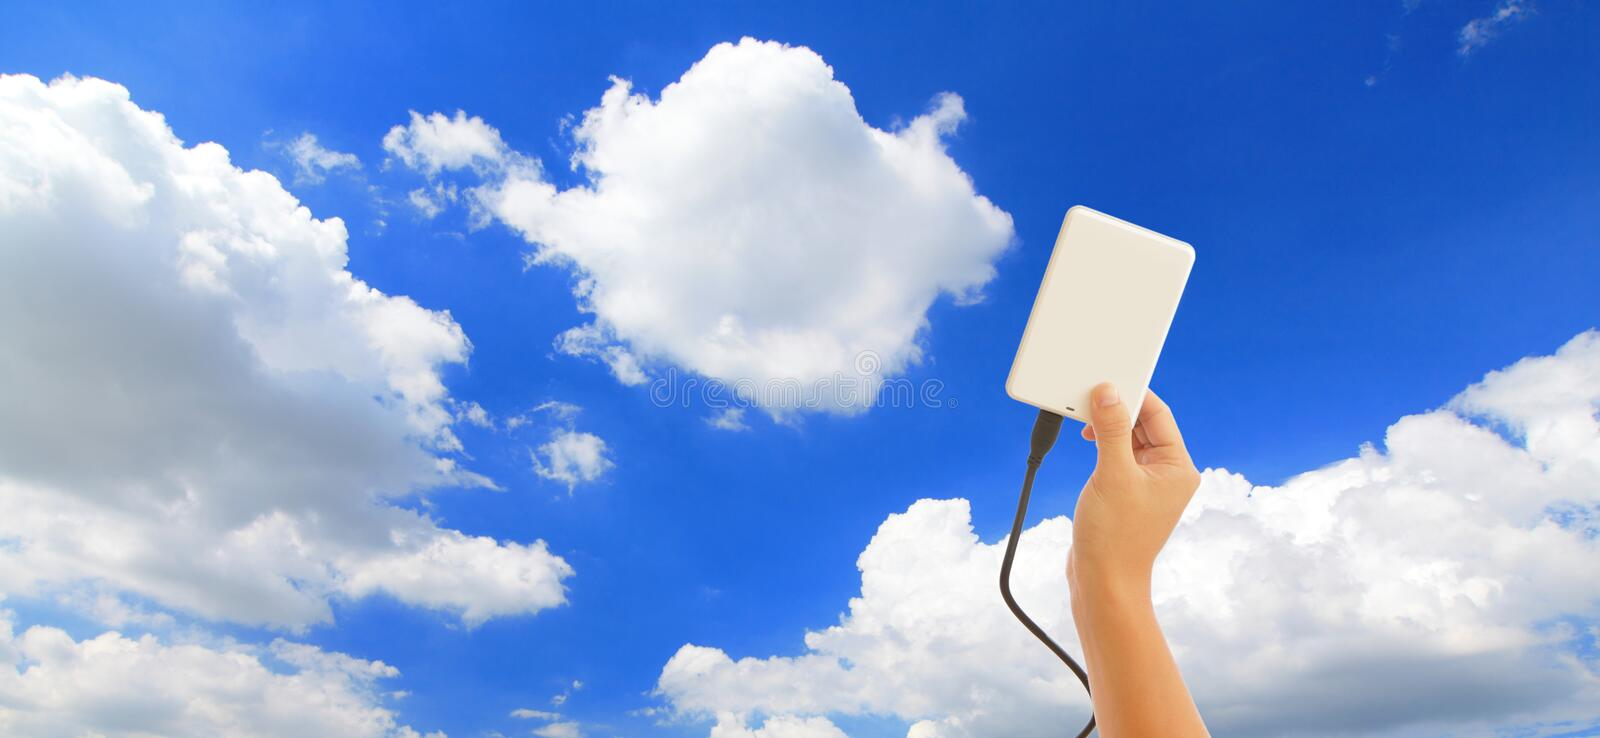 Download Save data to the cloud stock image. Image of customer - 21890349